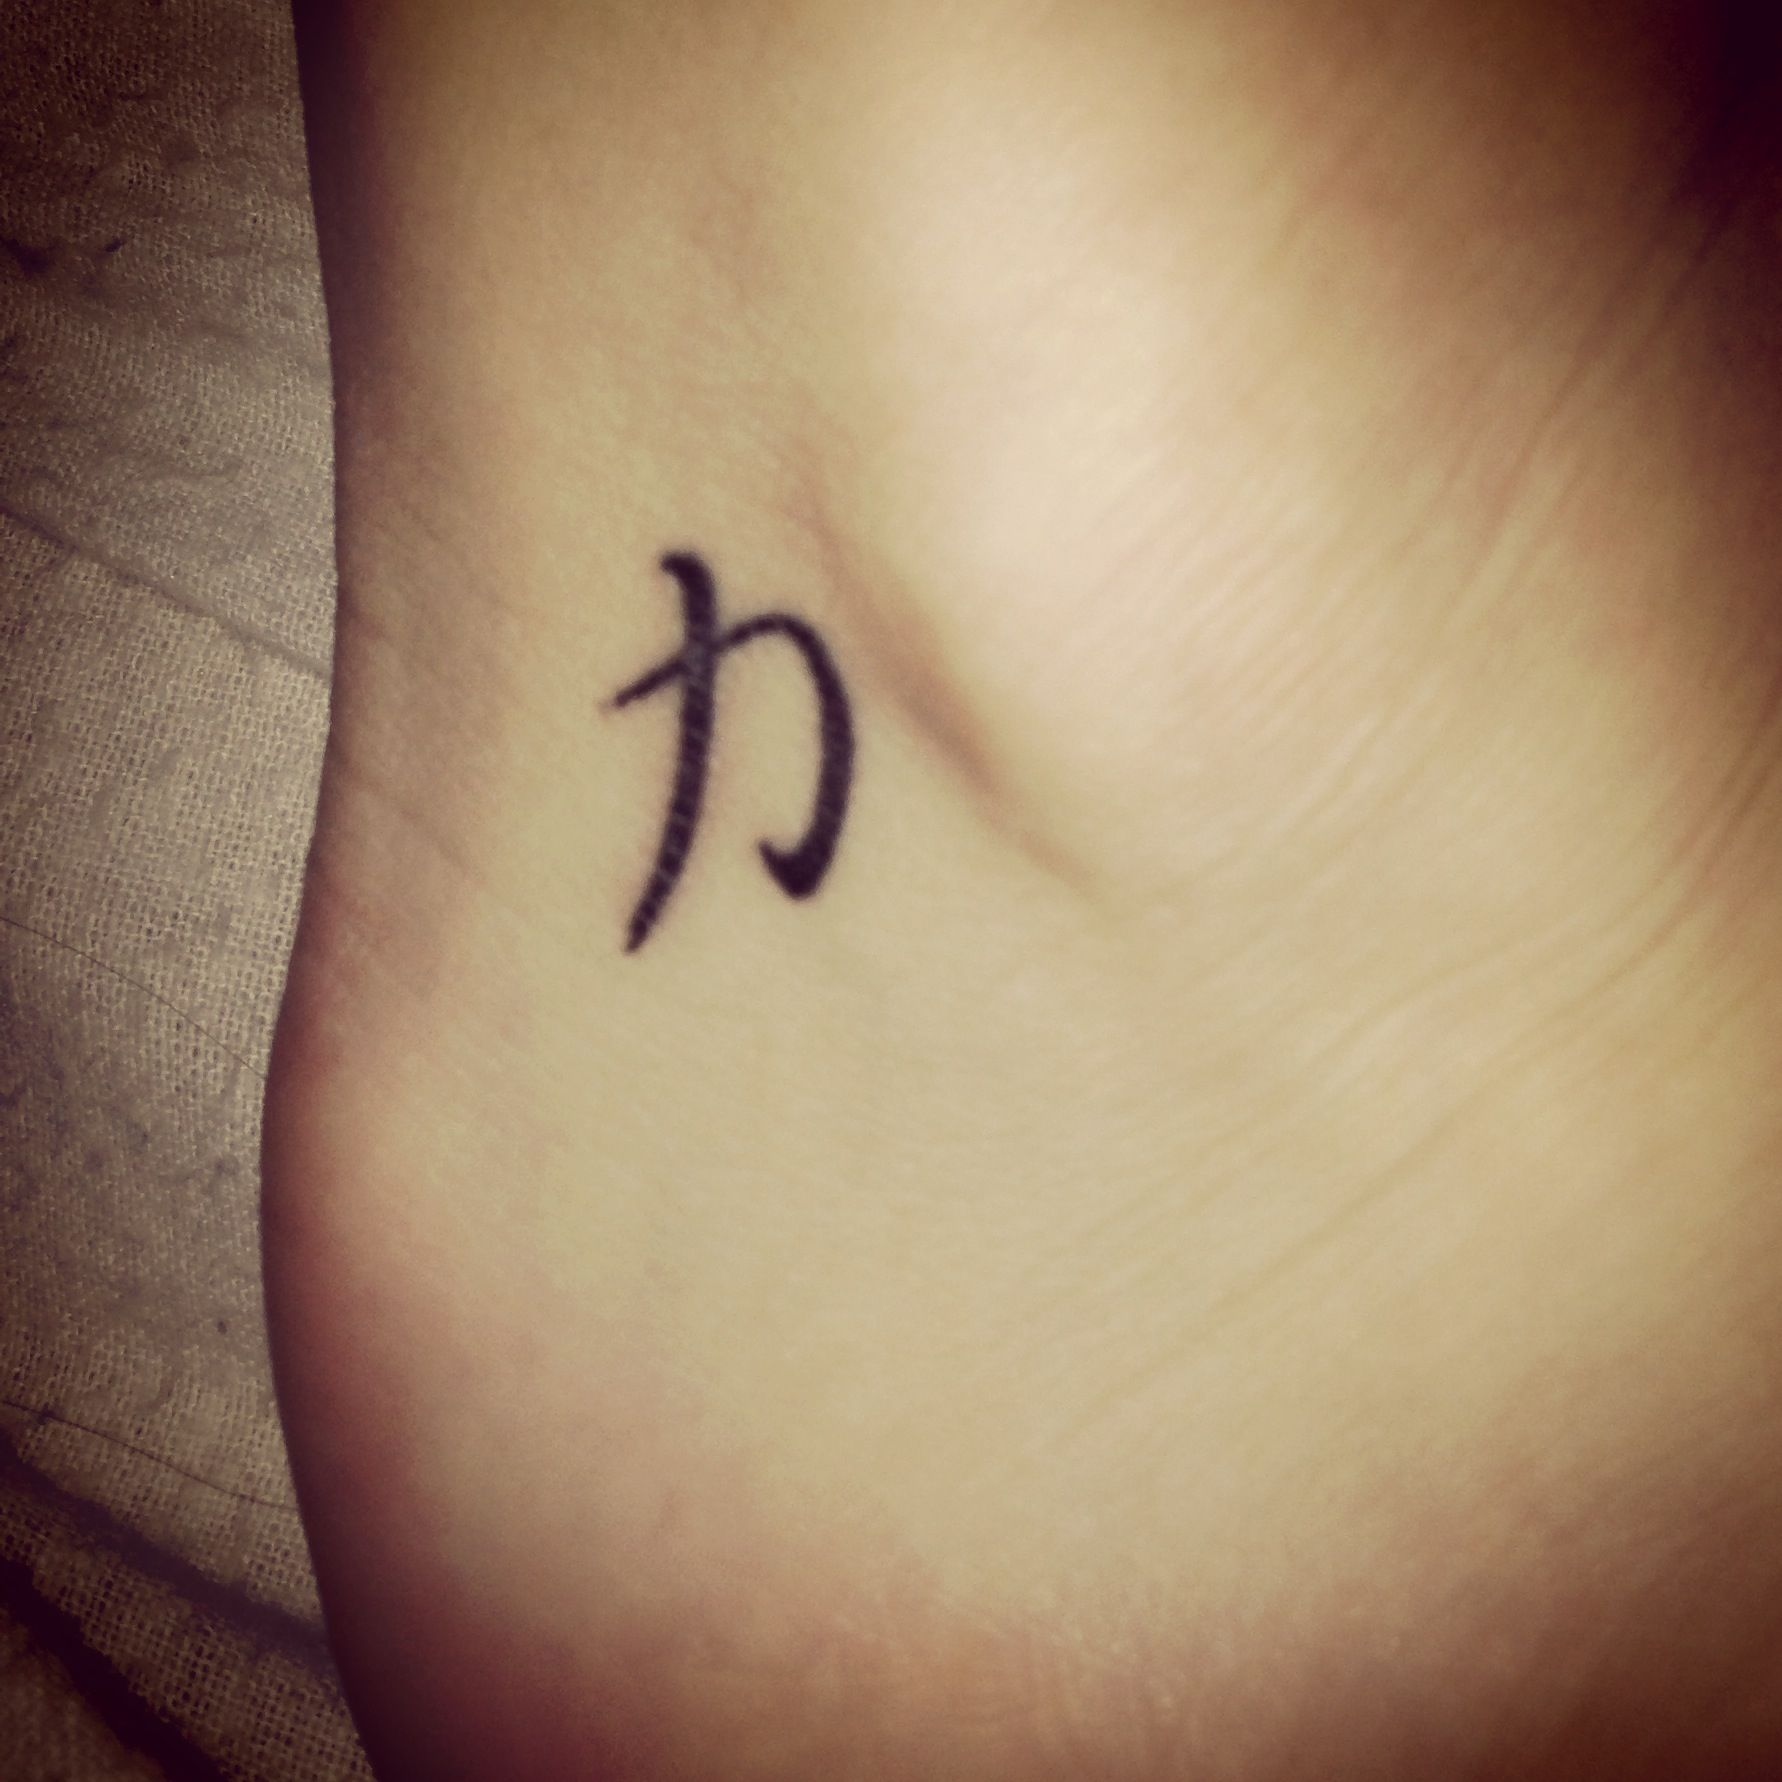 my tattoo! Strength symbol Enkel tatoeage ontwerpen